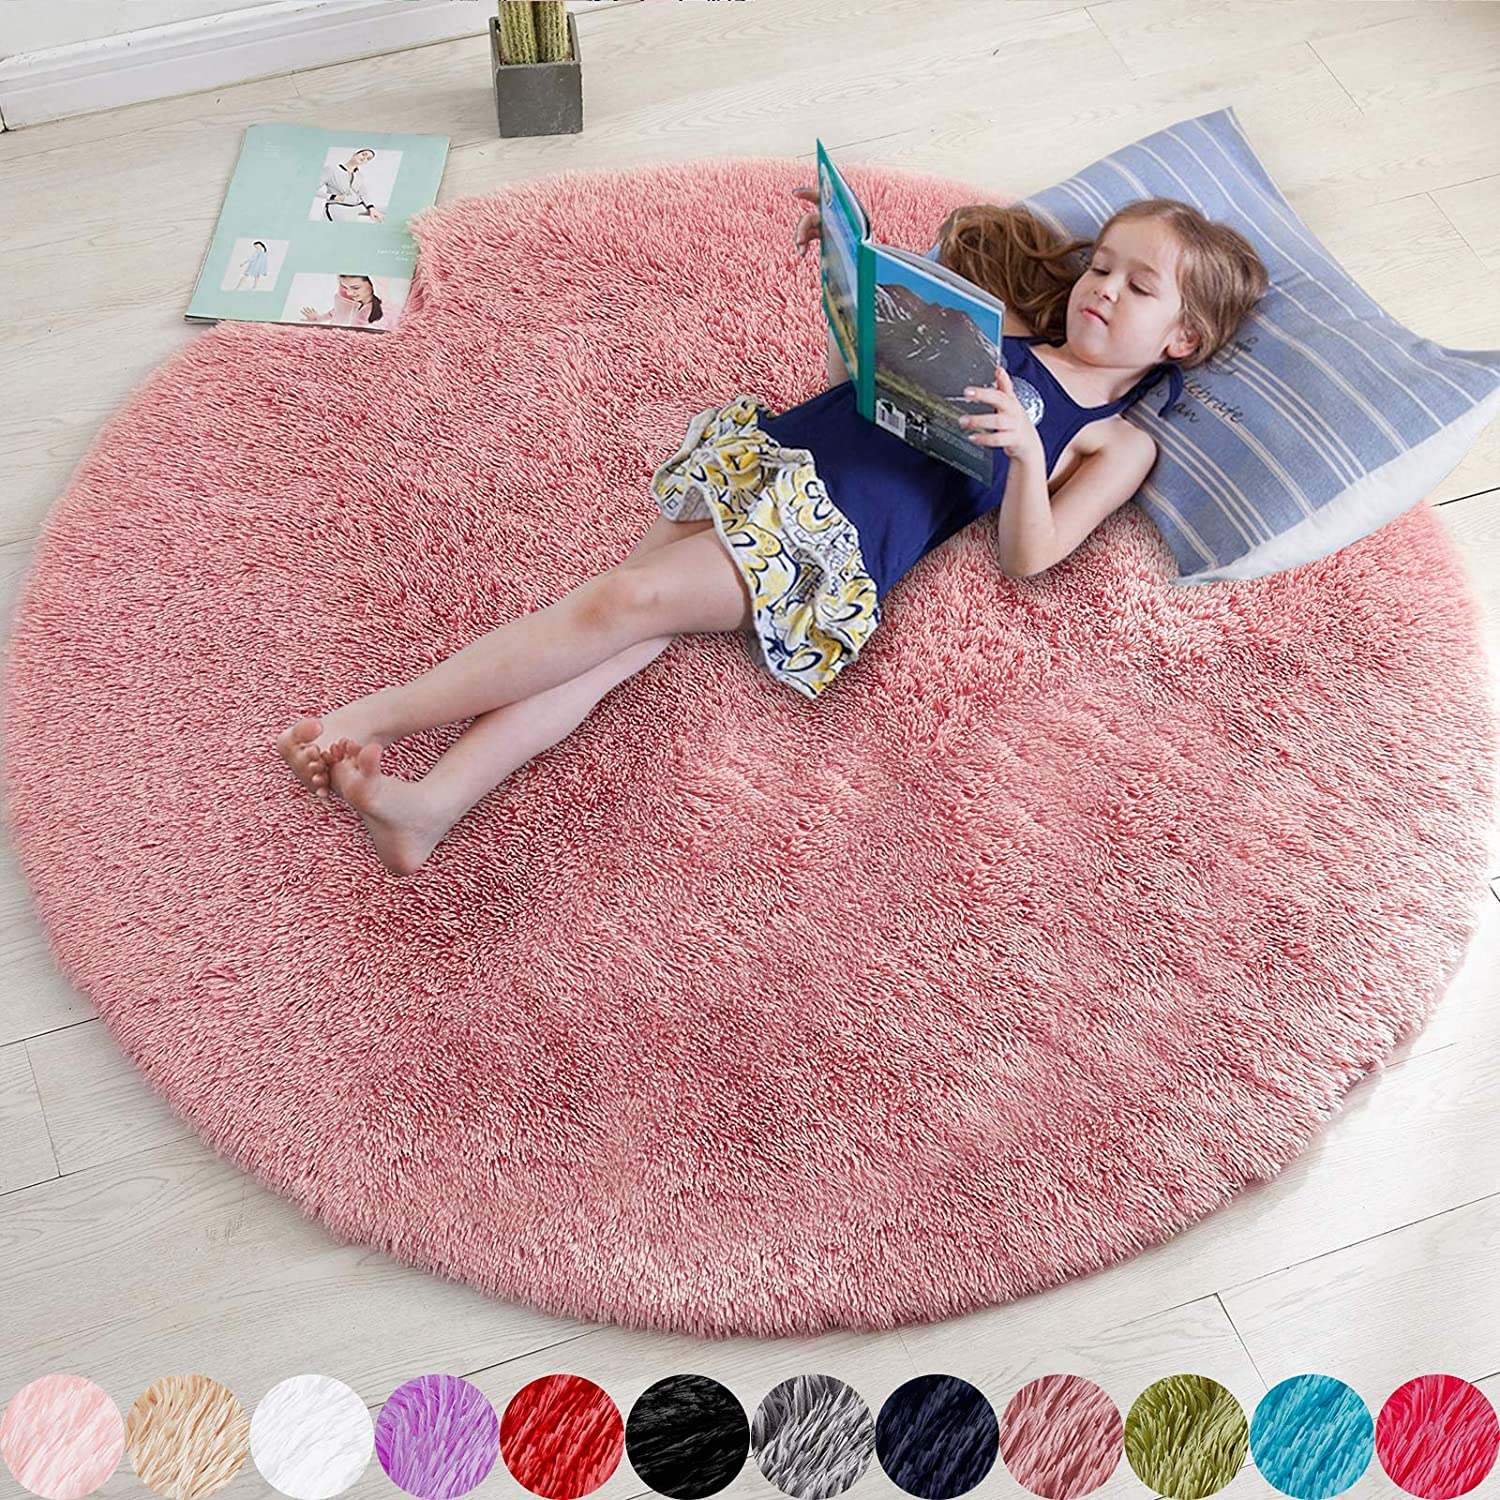 Blush Round Rug for Bedroom,Fluffy Circle Rug 5'X5' for Kids Room,Furry Carpet for Teen Girls Room,Shaggy Circular Rug for Nursery Room,Fuzzy Plush Rug for Dorm,Blush Carpet,Cute Room Decor for Baby